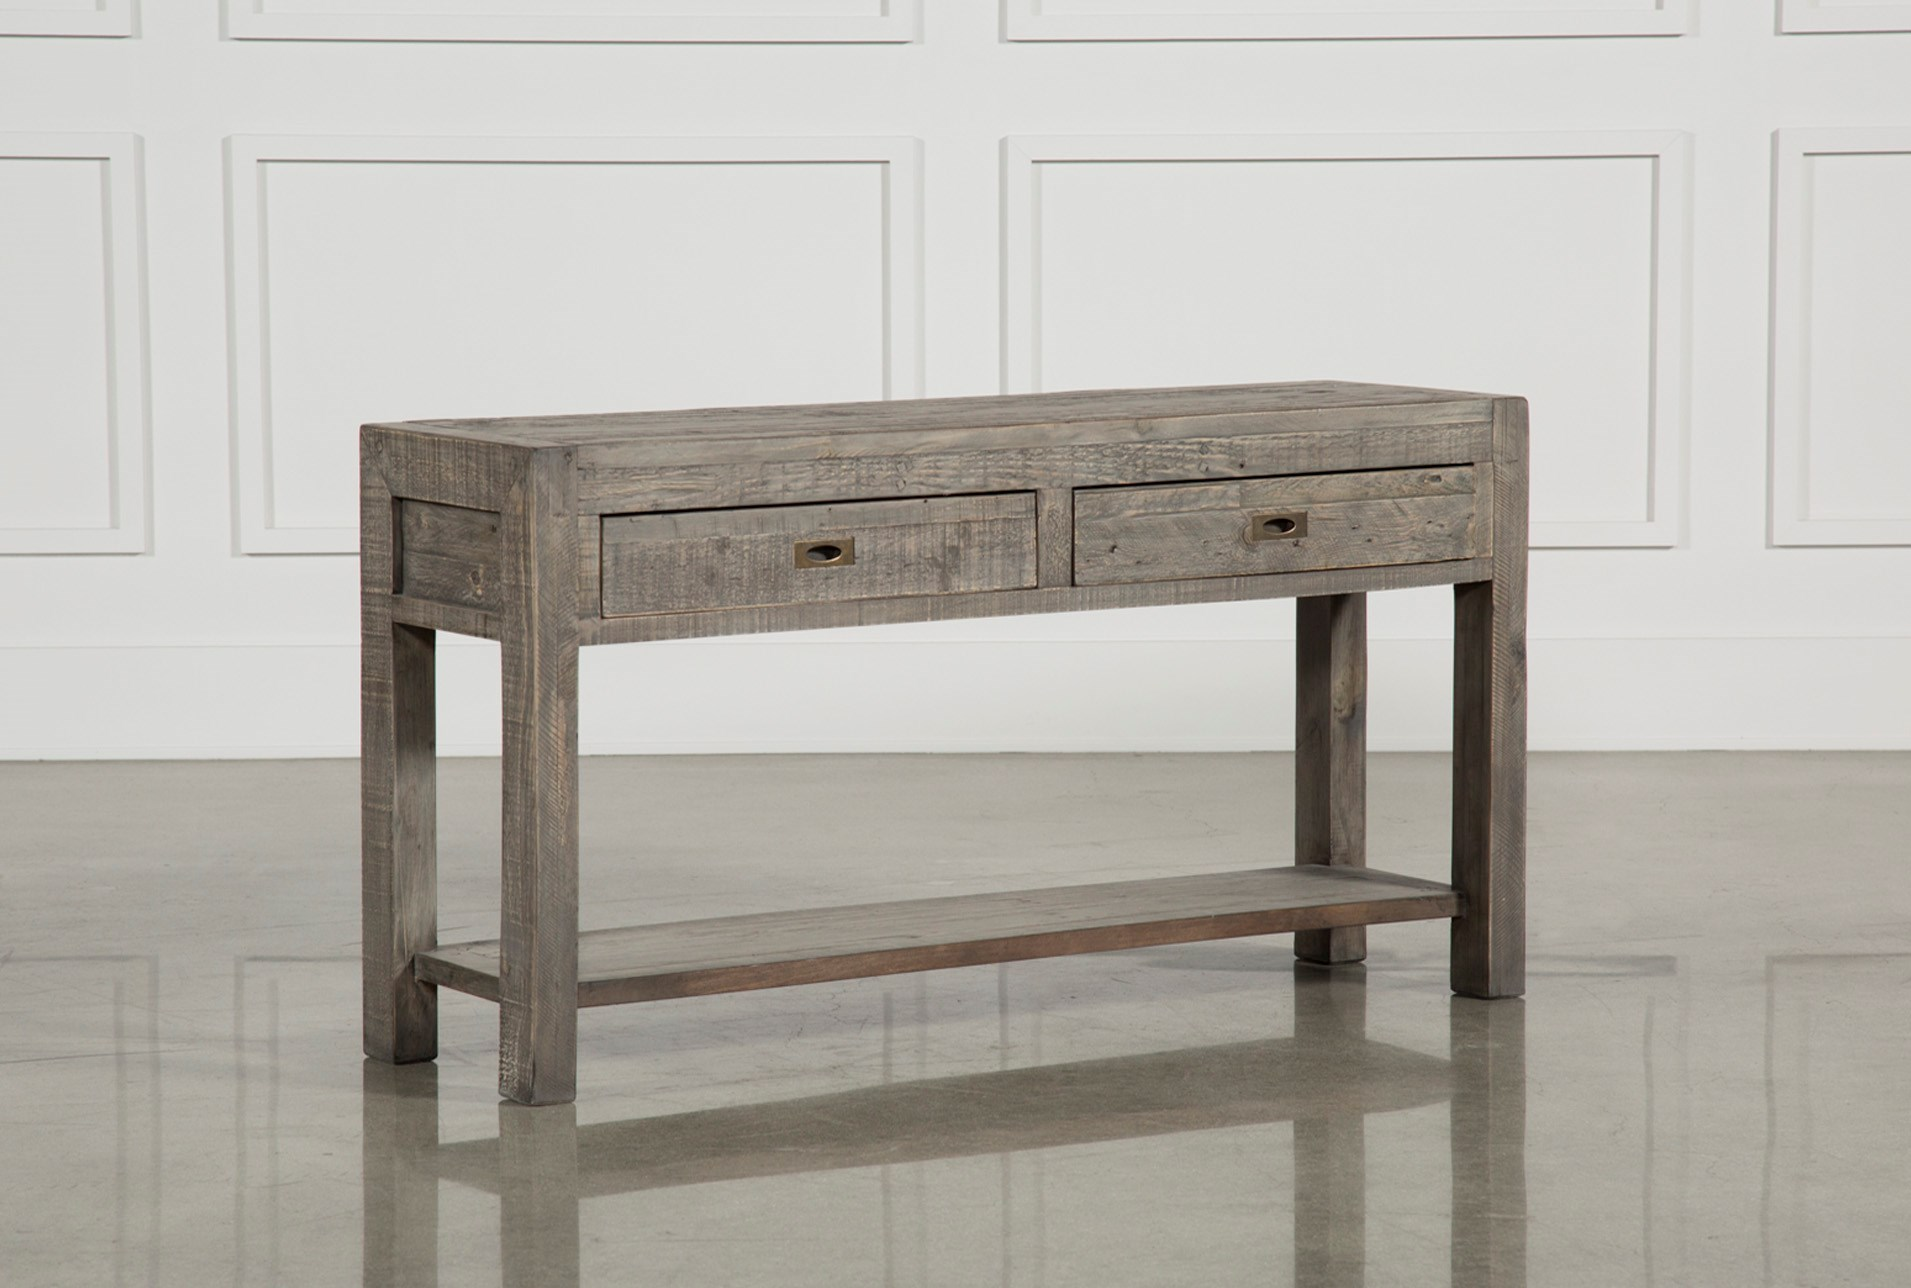 Console tables living spaces display product reviews for combs console table watchthetrailerfo